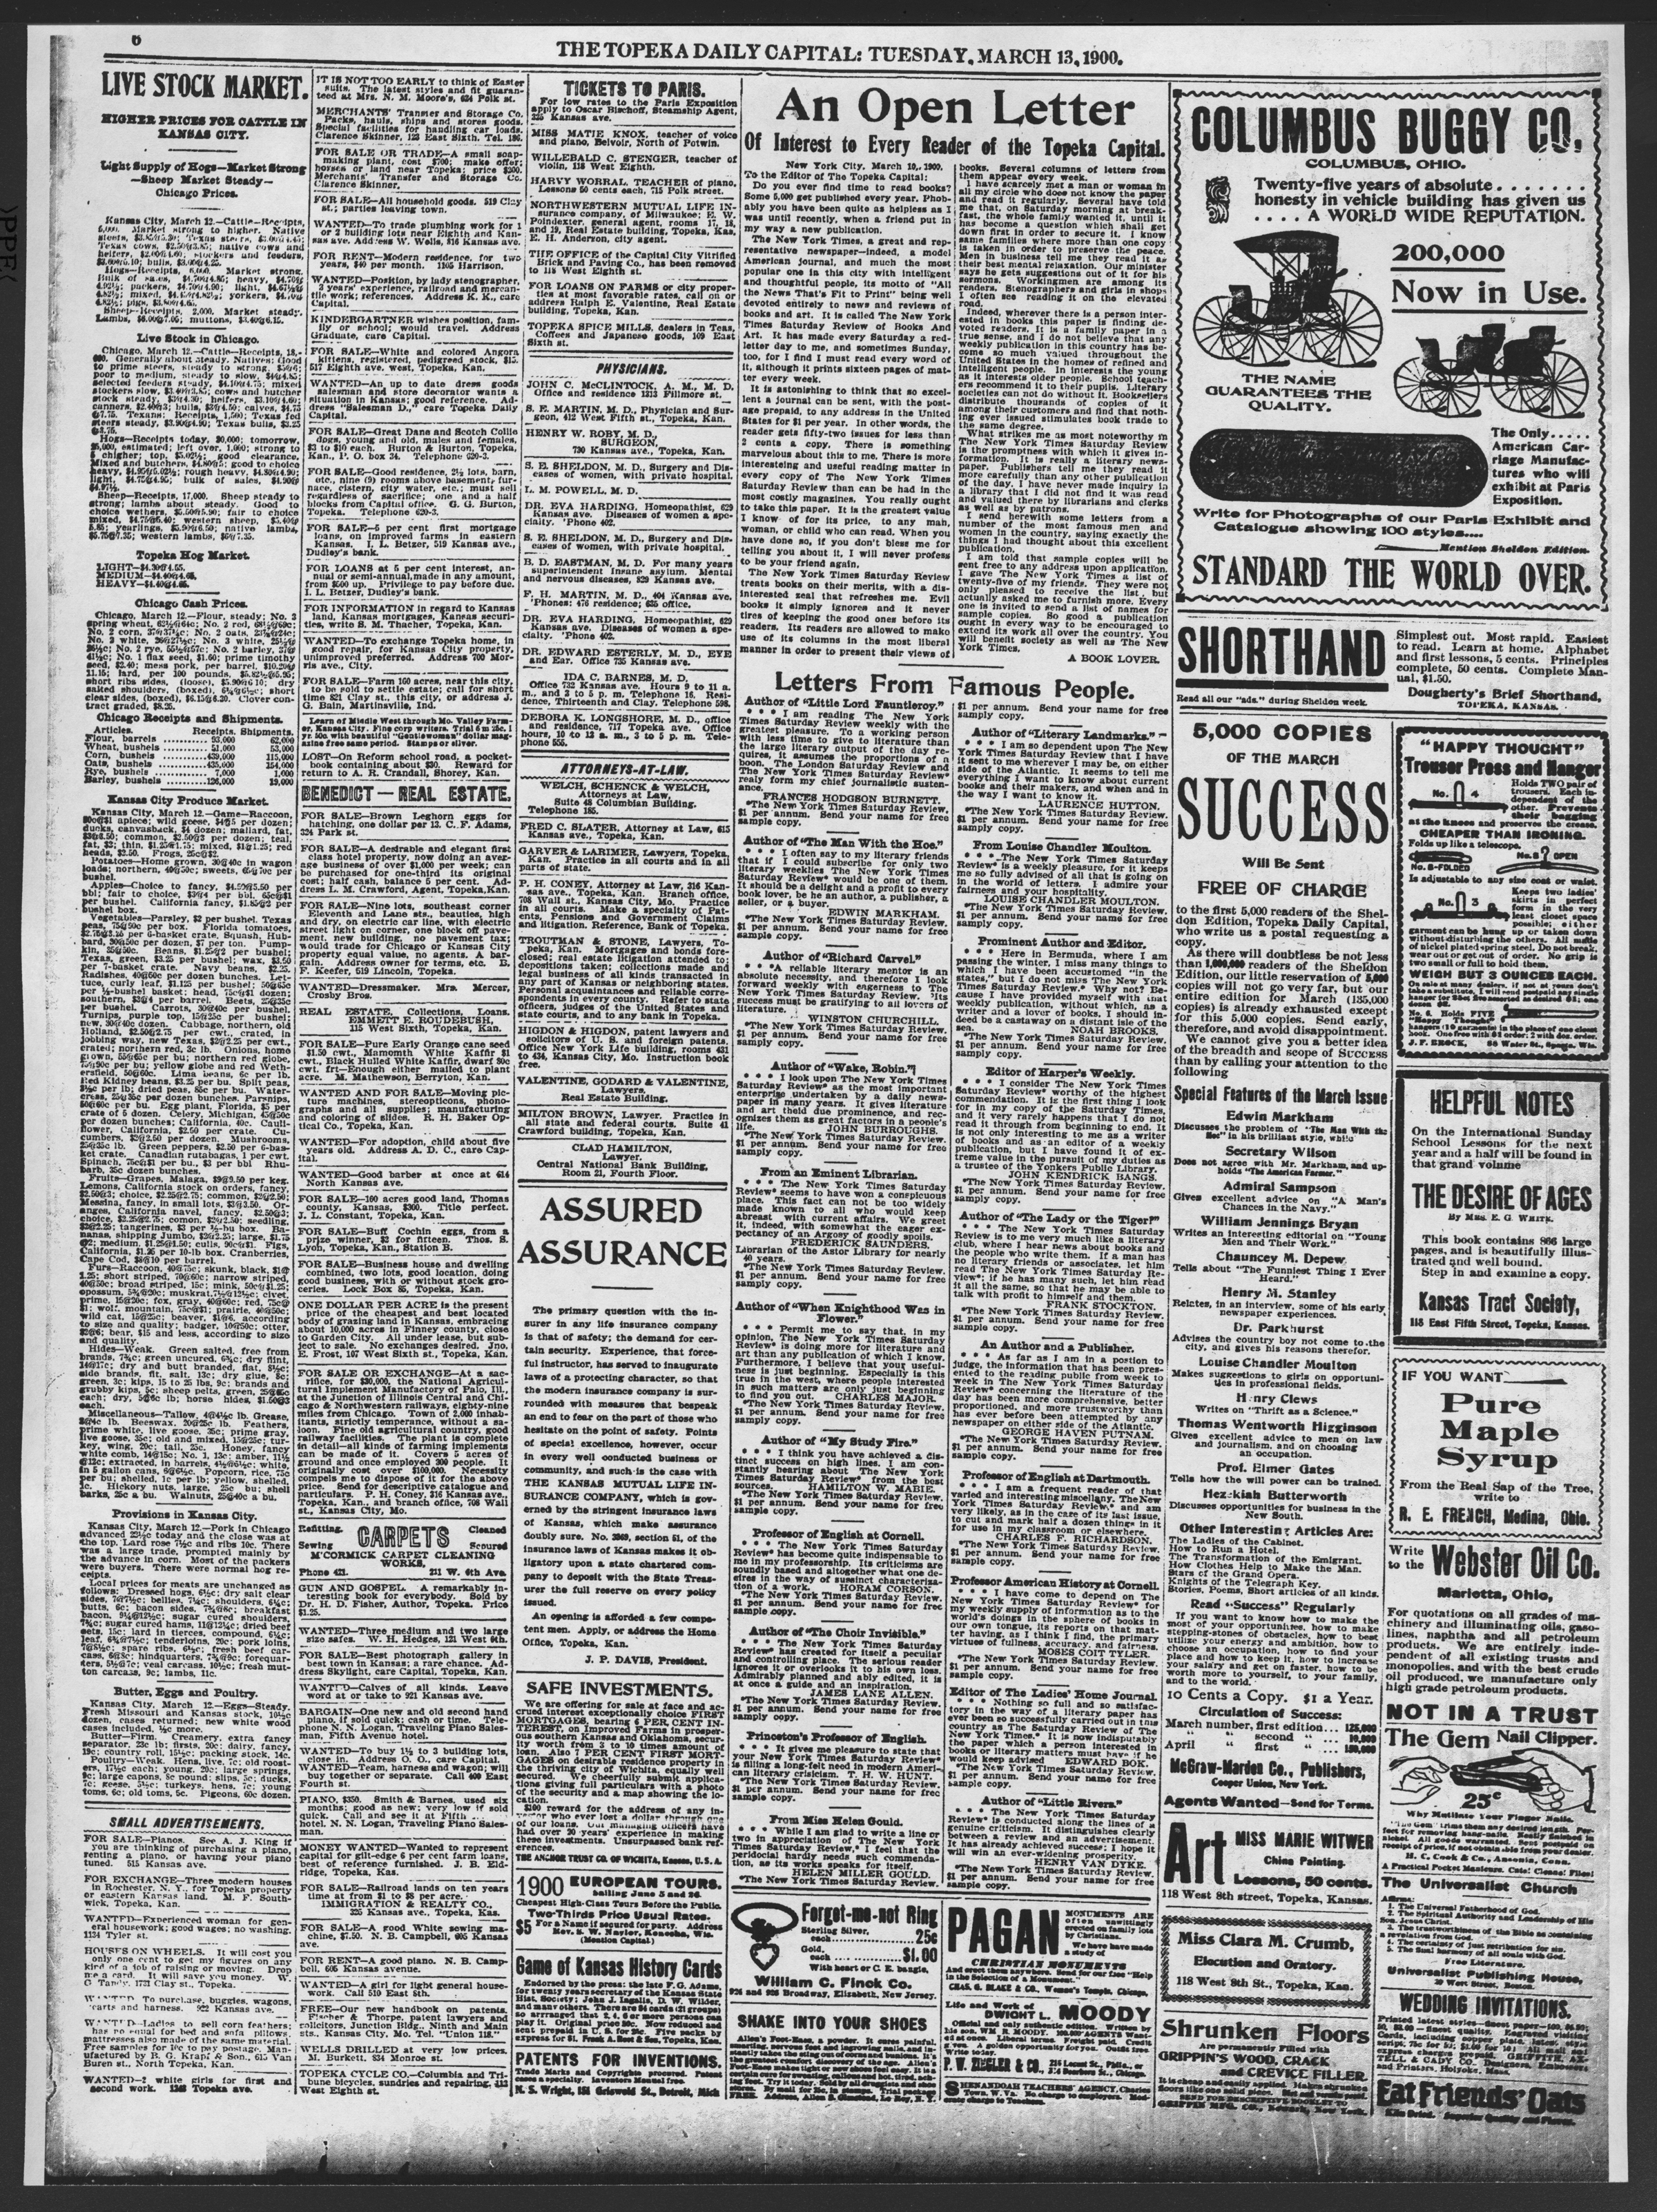 The Topeka daily capital. Sheldon edition - 6, Tuesday, March 13, 1900